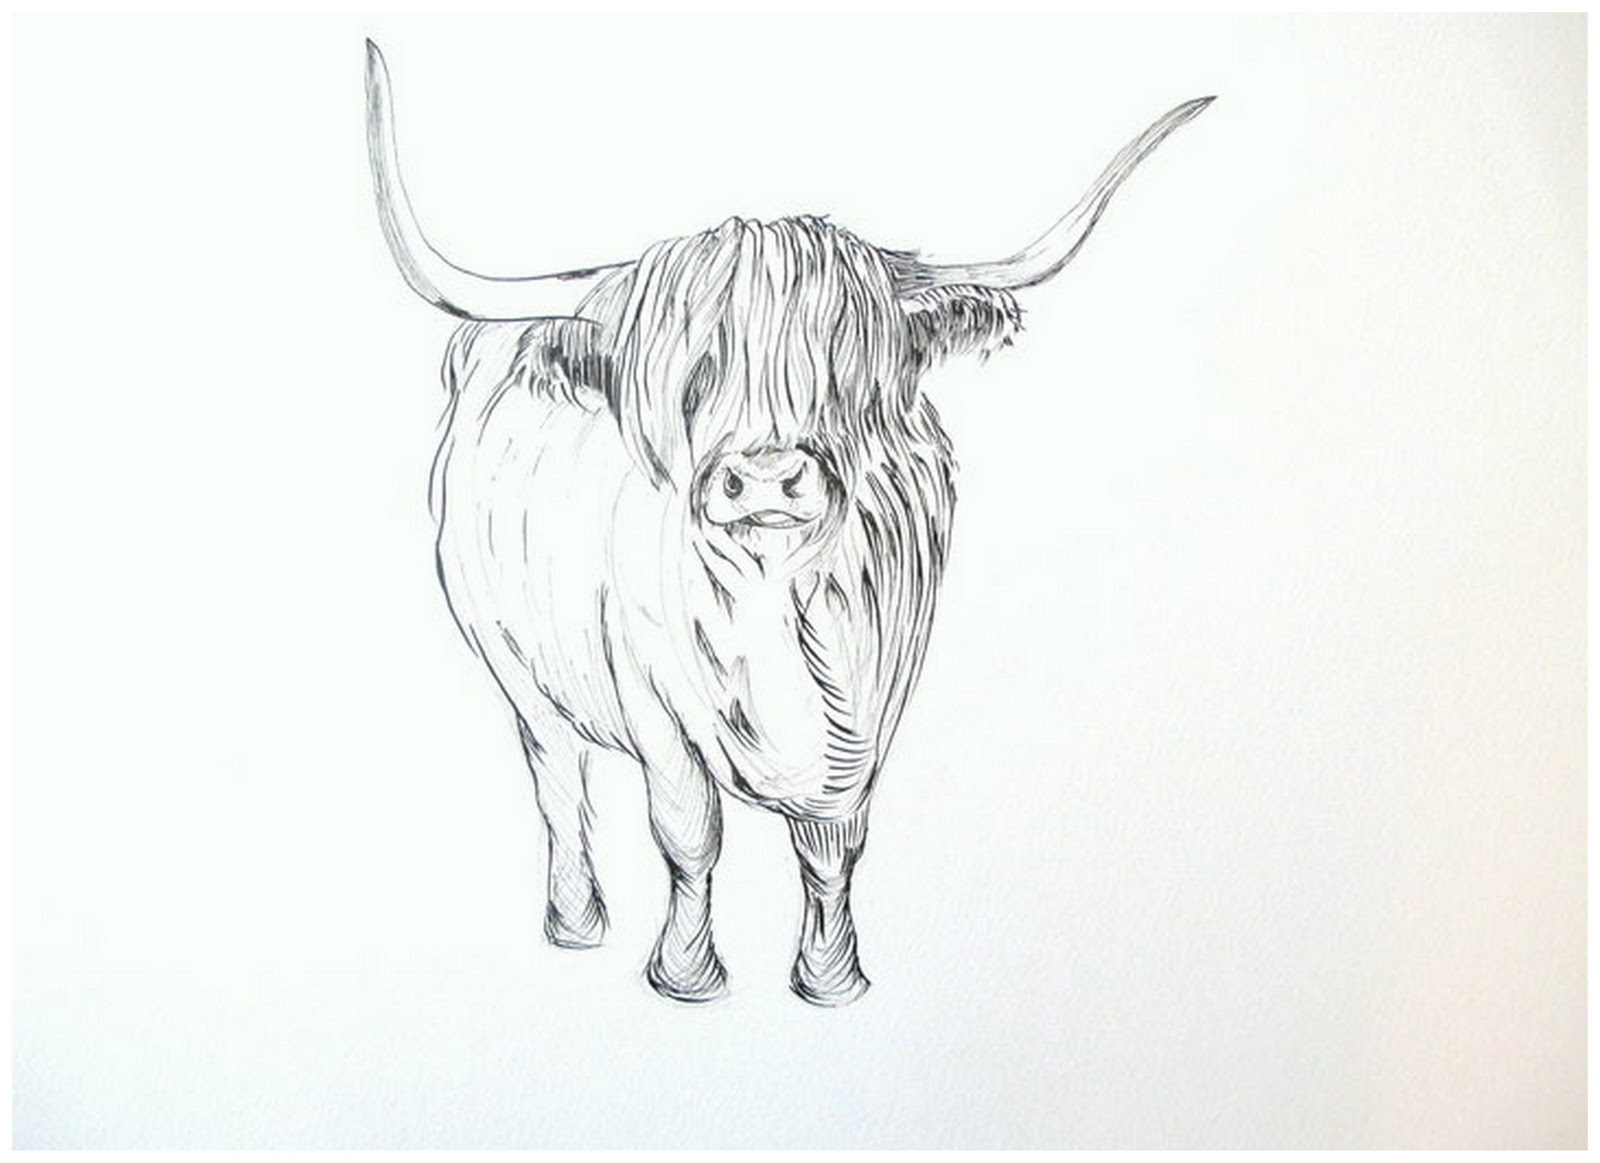 Drawn cattle line art #5